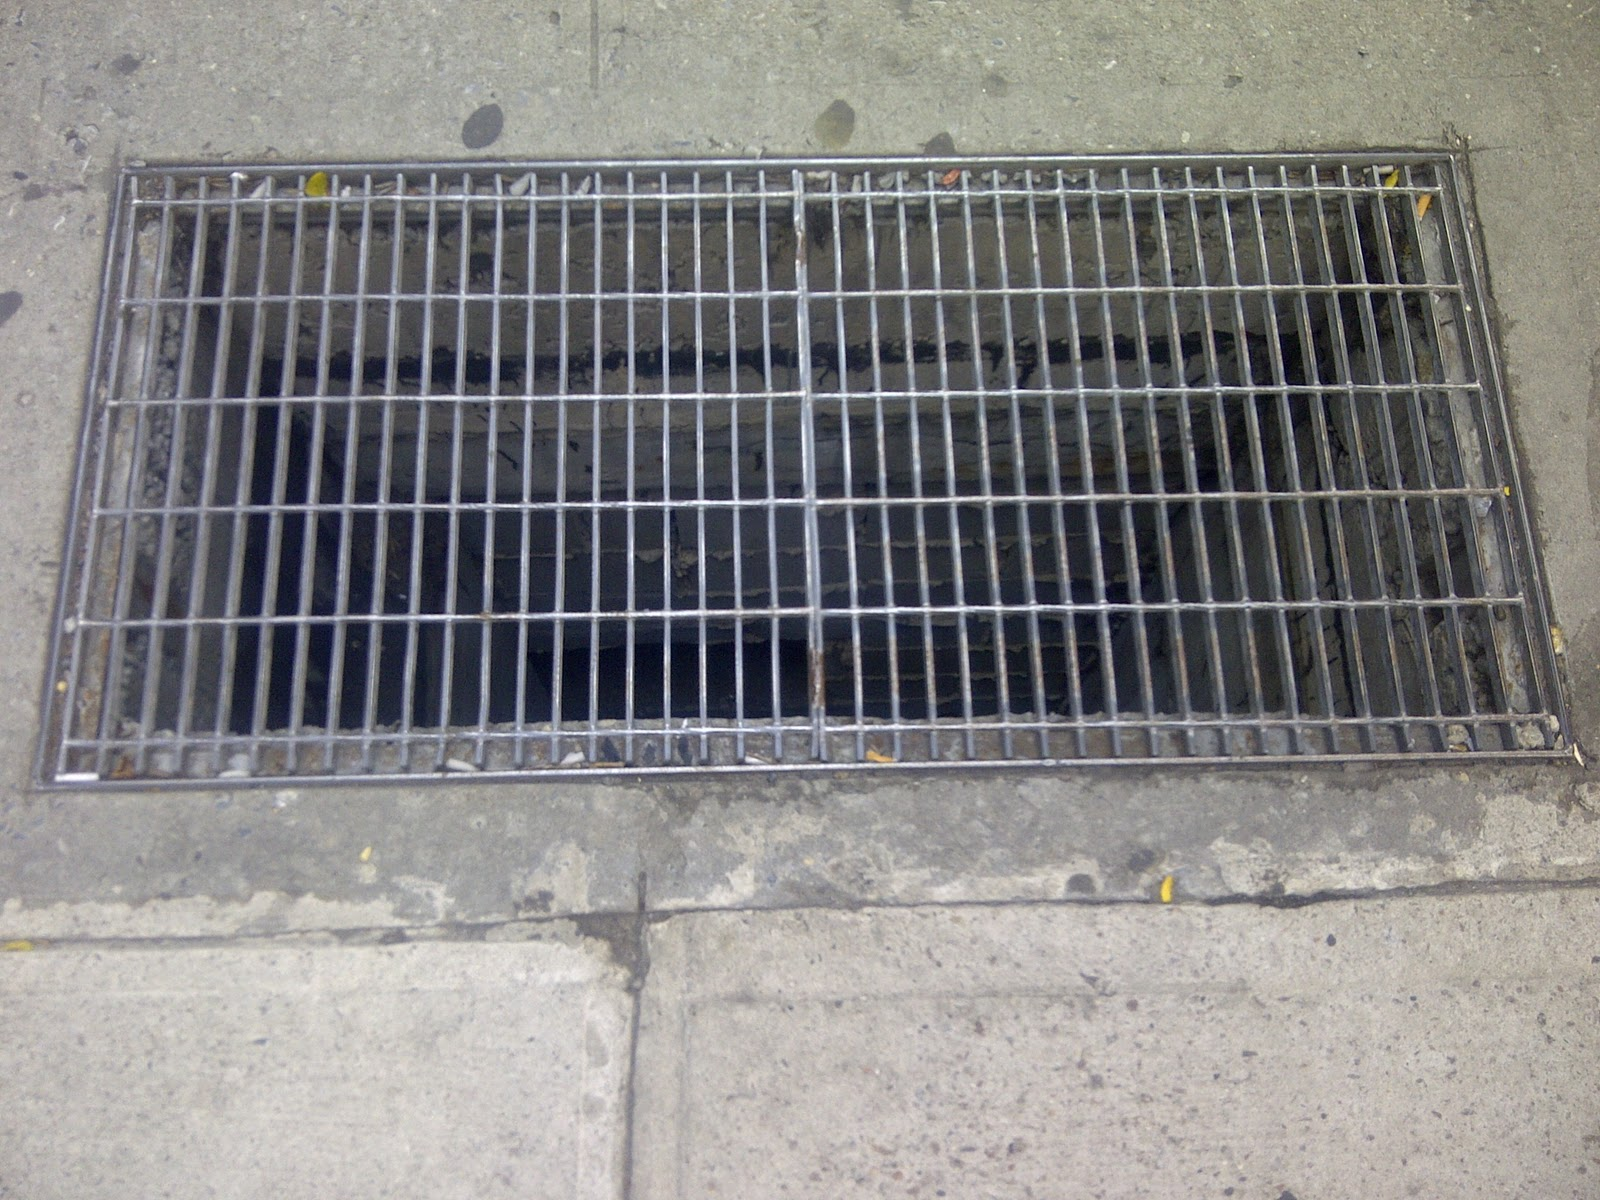 Man reportedly fell through sidewalk grate: officials - NY Daily News